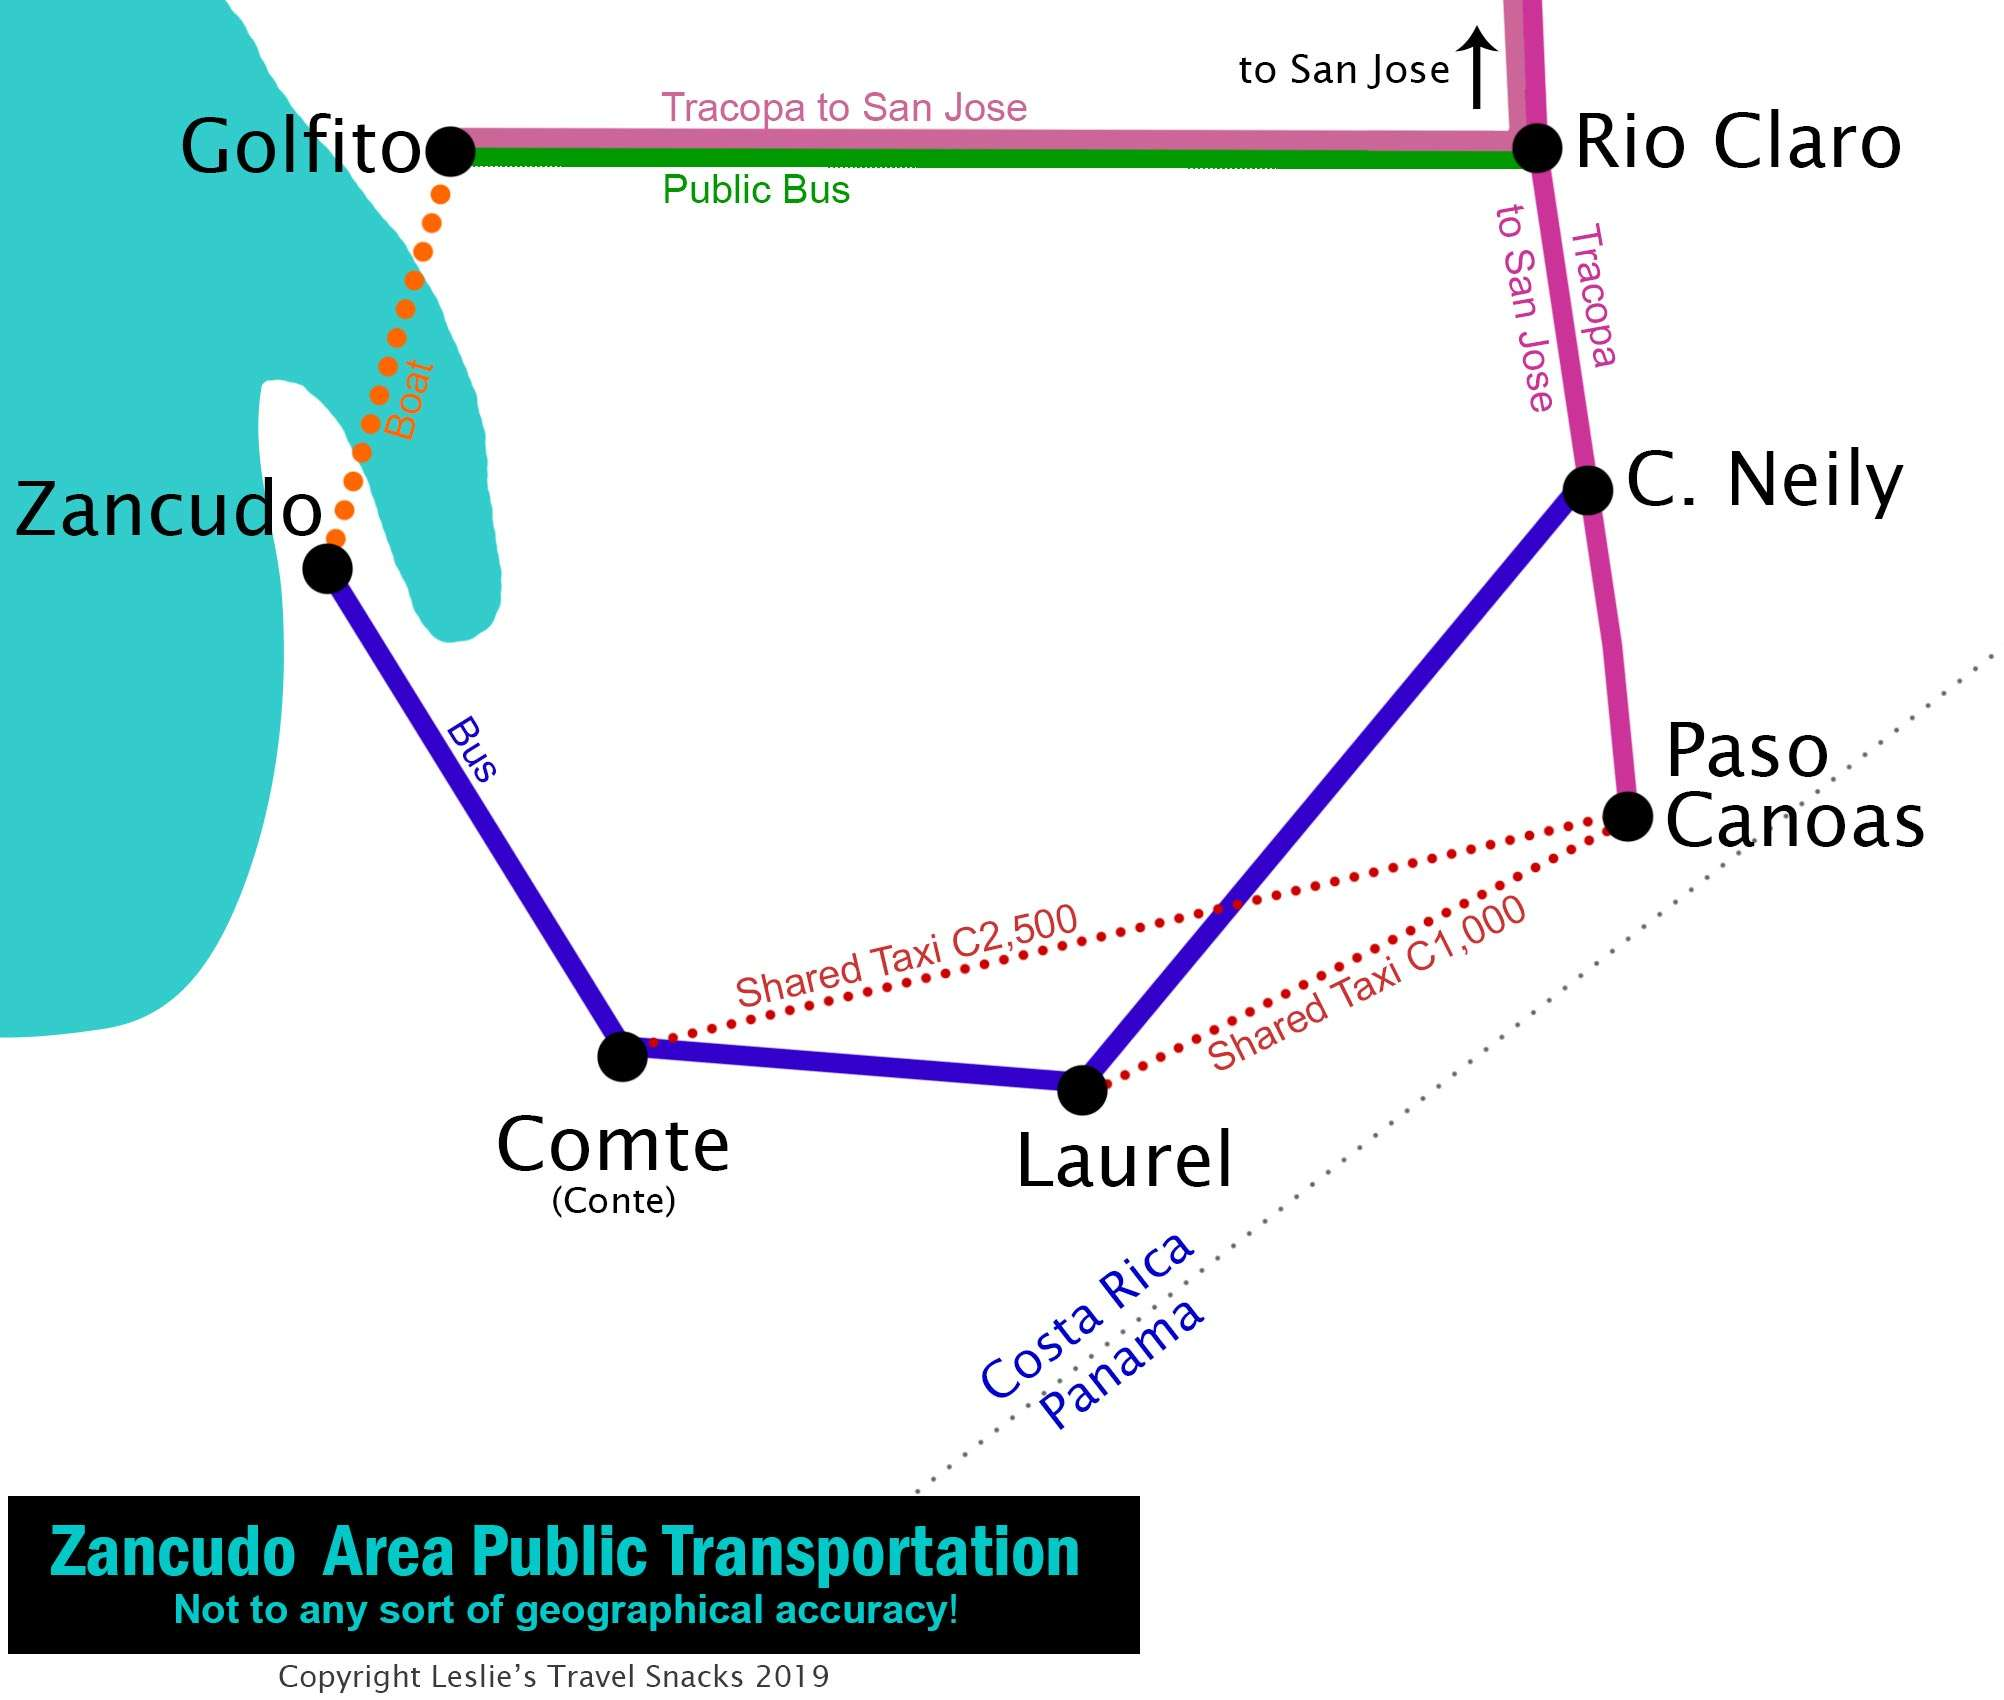 This is the Zancudo-specific public transportation available.